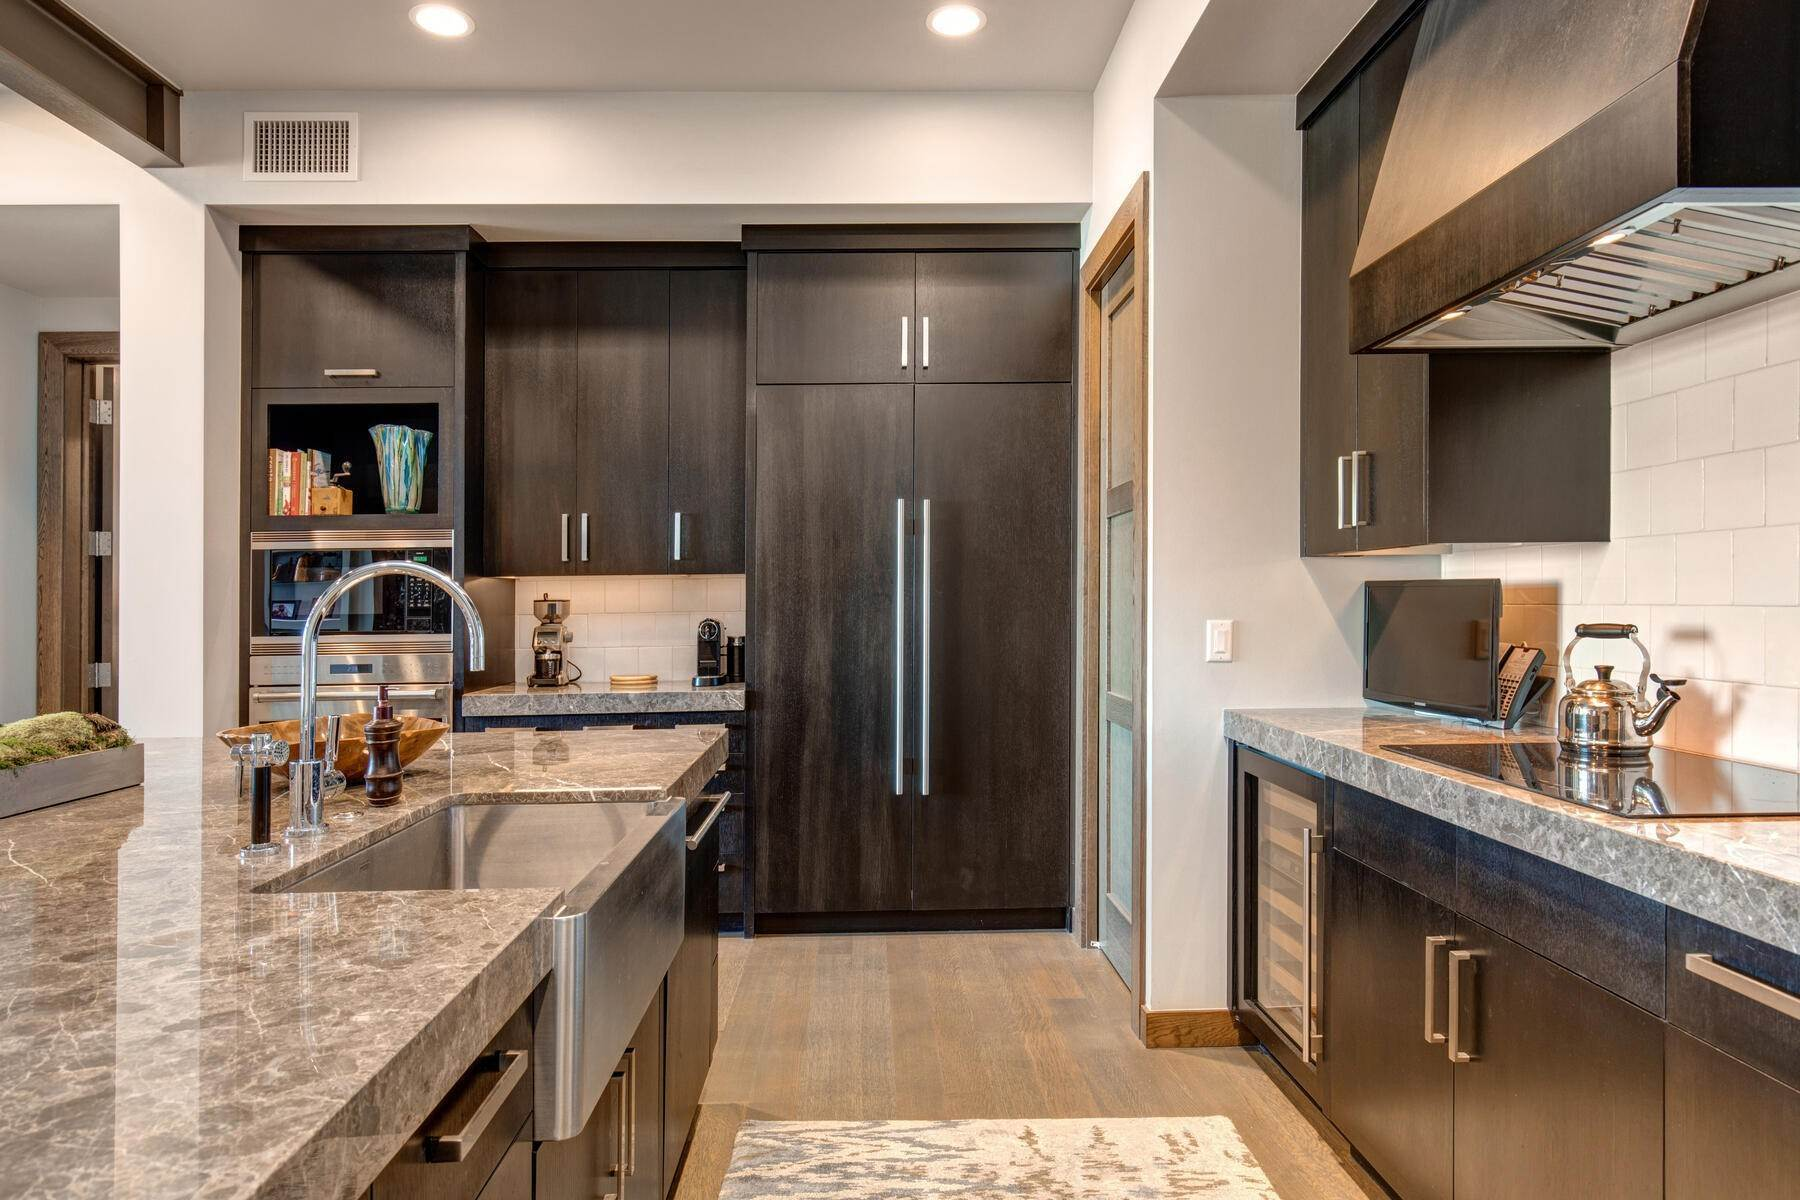 16. Condominiums for Sale at Ski-In Ski-Out Alpine Luxury Living at Stein Eriksen Residences 6702 Stein Circle #131 Park City, Utah 84060 United States